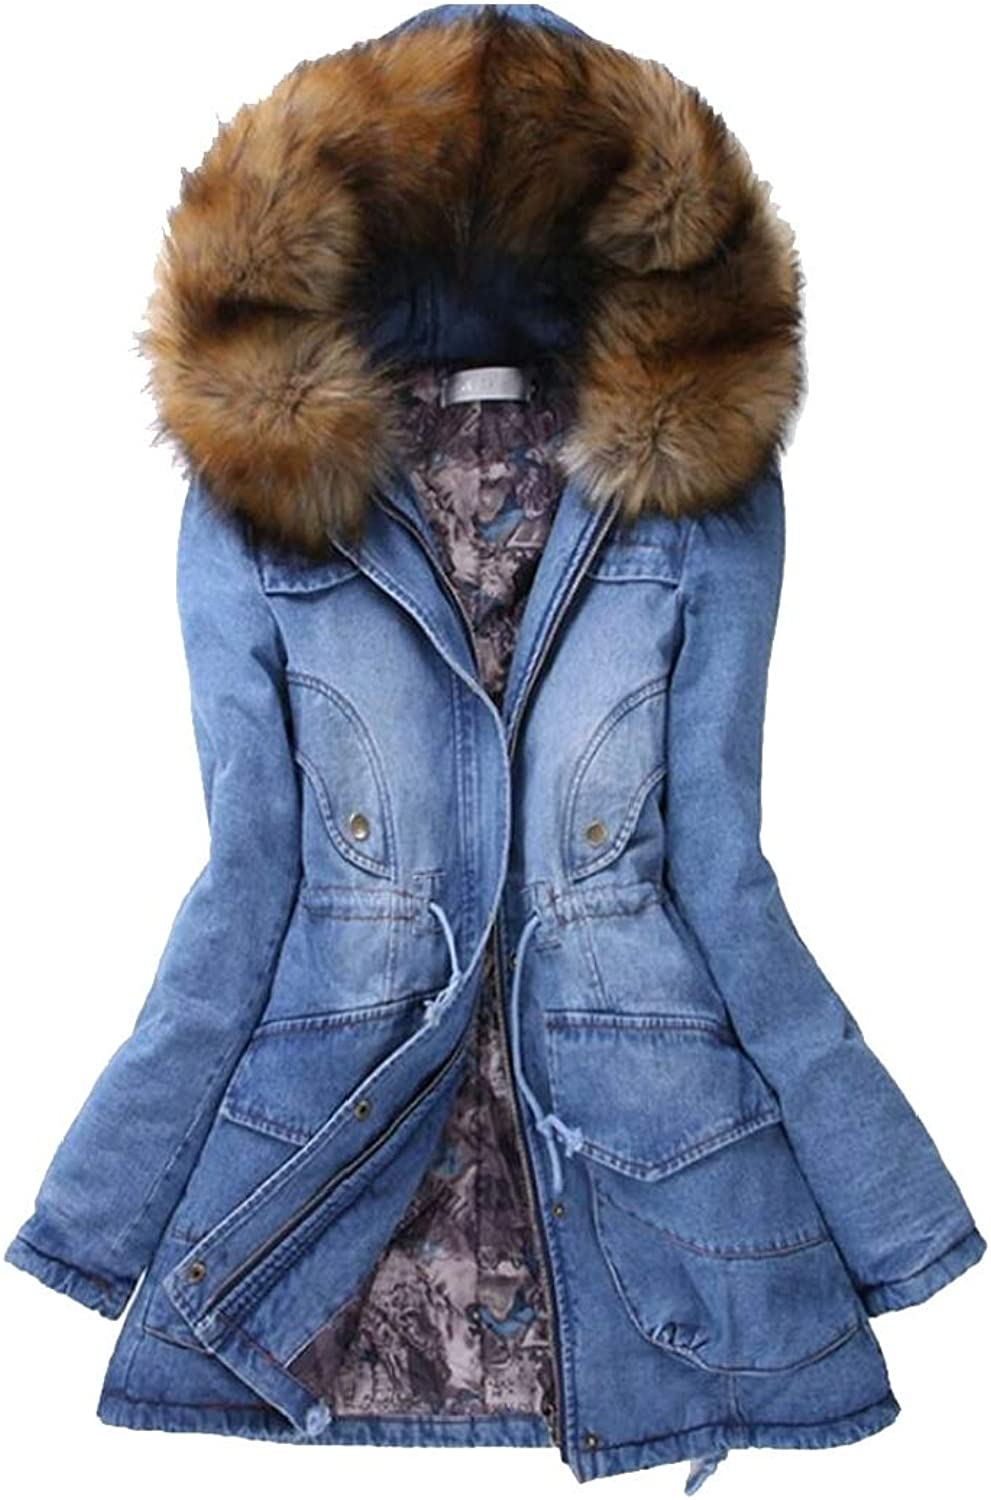 GenericWomen Winter Padded Denim FauxFur Collar Mid Long Length Thick Down Jacket Coat